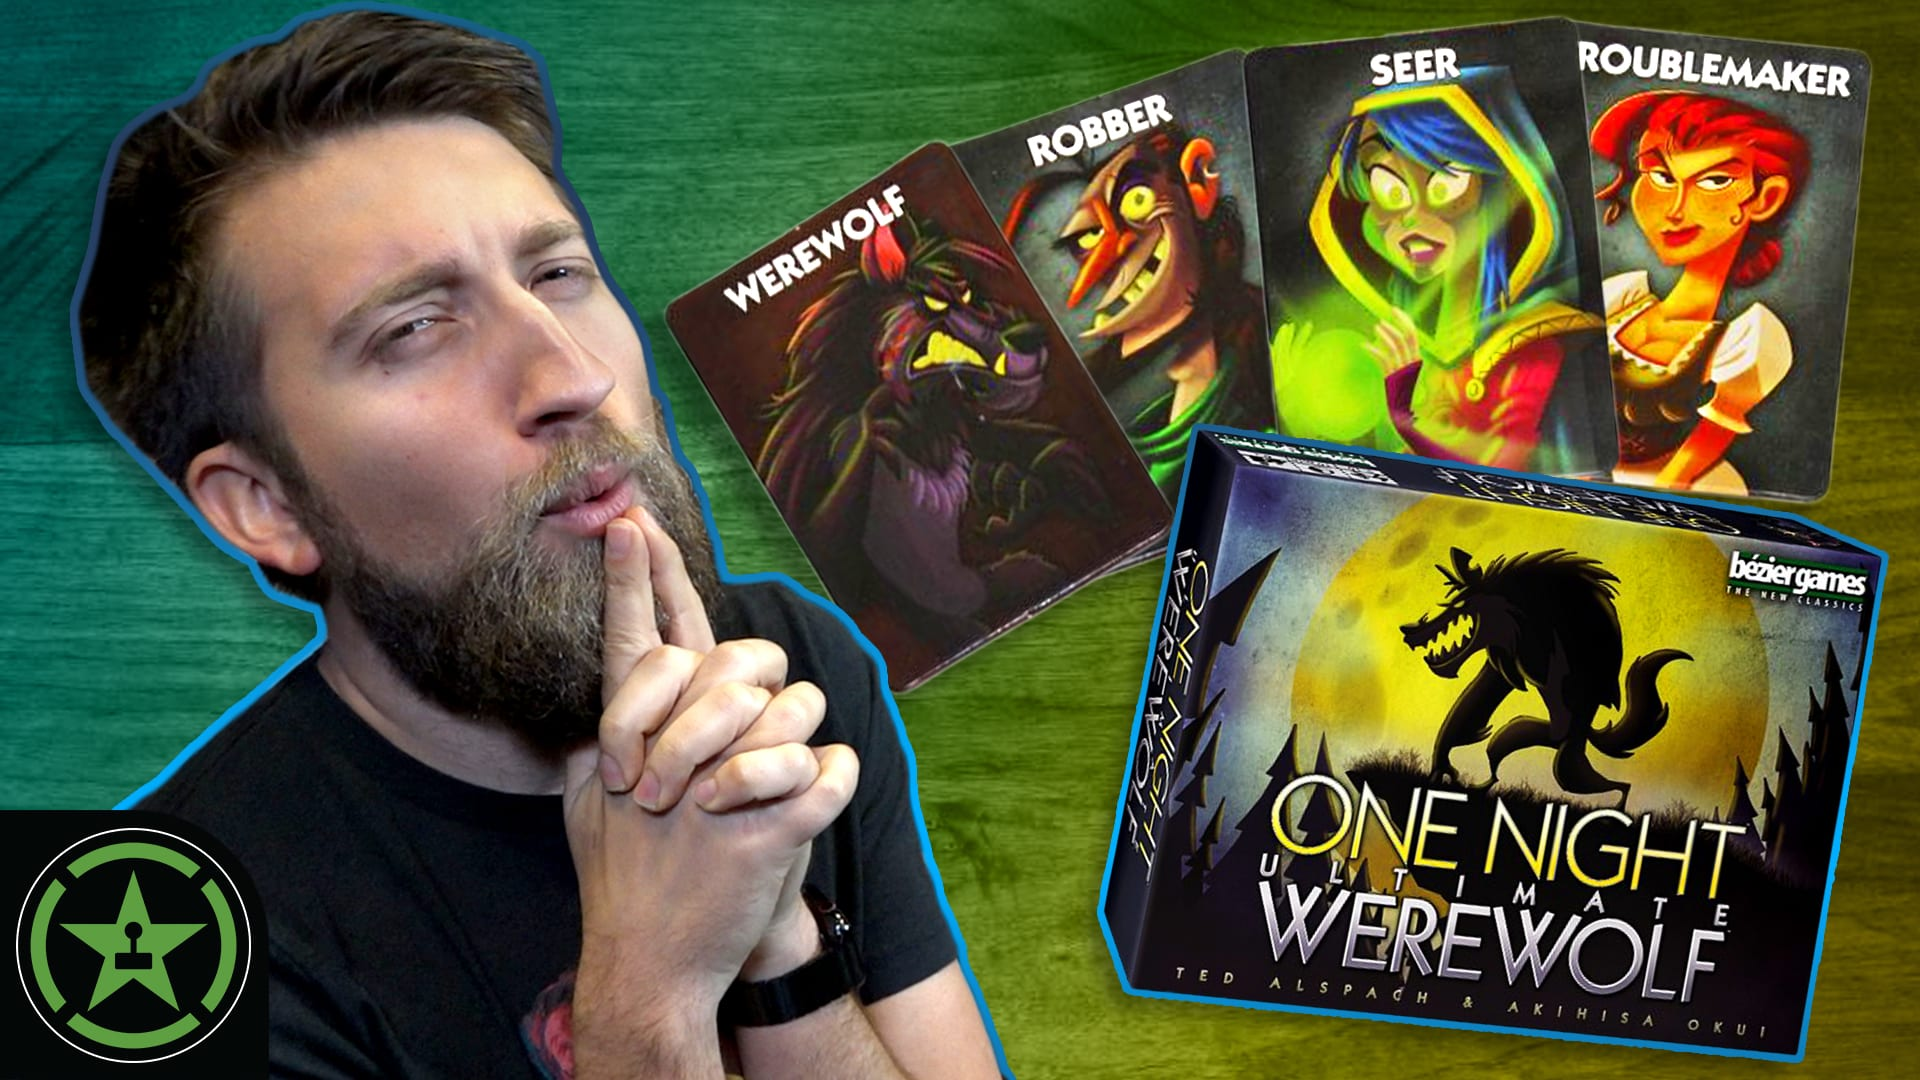 WHO ARE YOU?! - One Night Ultimate Werewolf (#2) - Let's